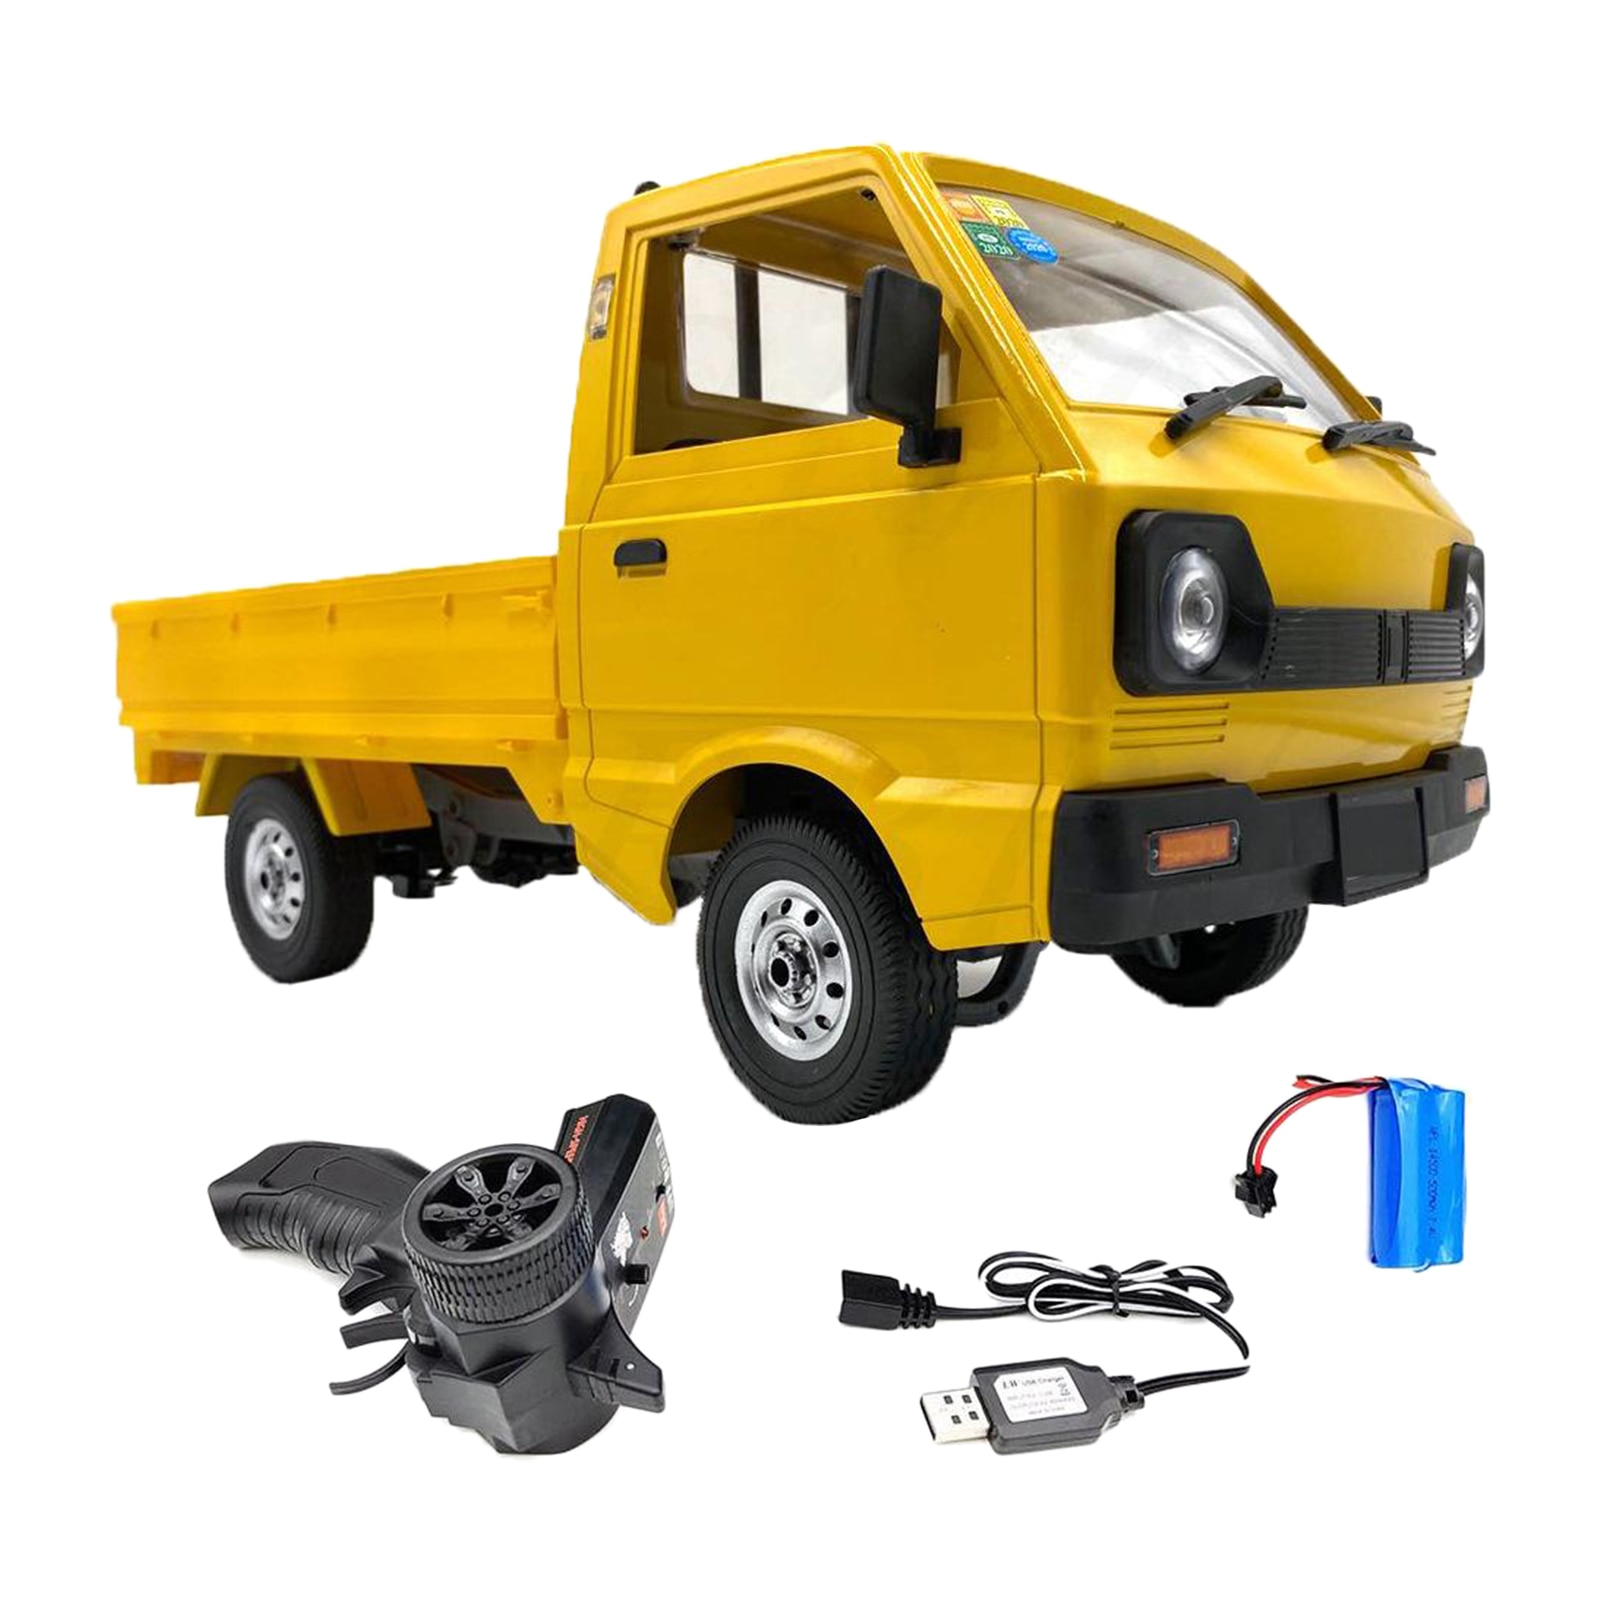 TOY WPL RC TRUCK CAR 1:10 4WD BRUSH MOTOR LED LIGHT AND 1-3 BATTERY